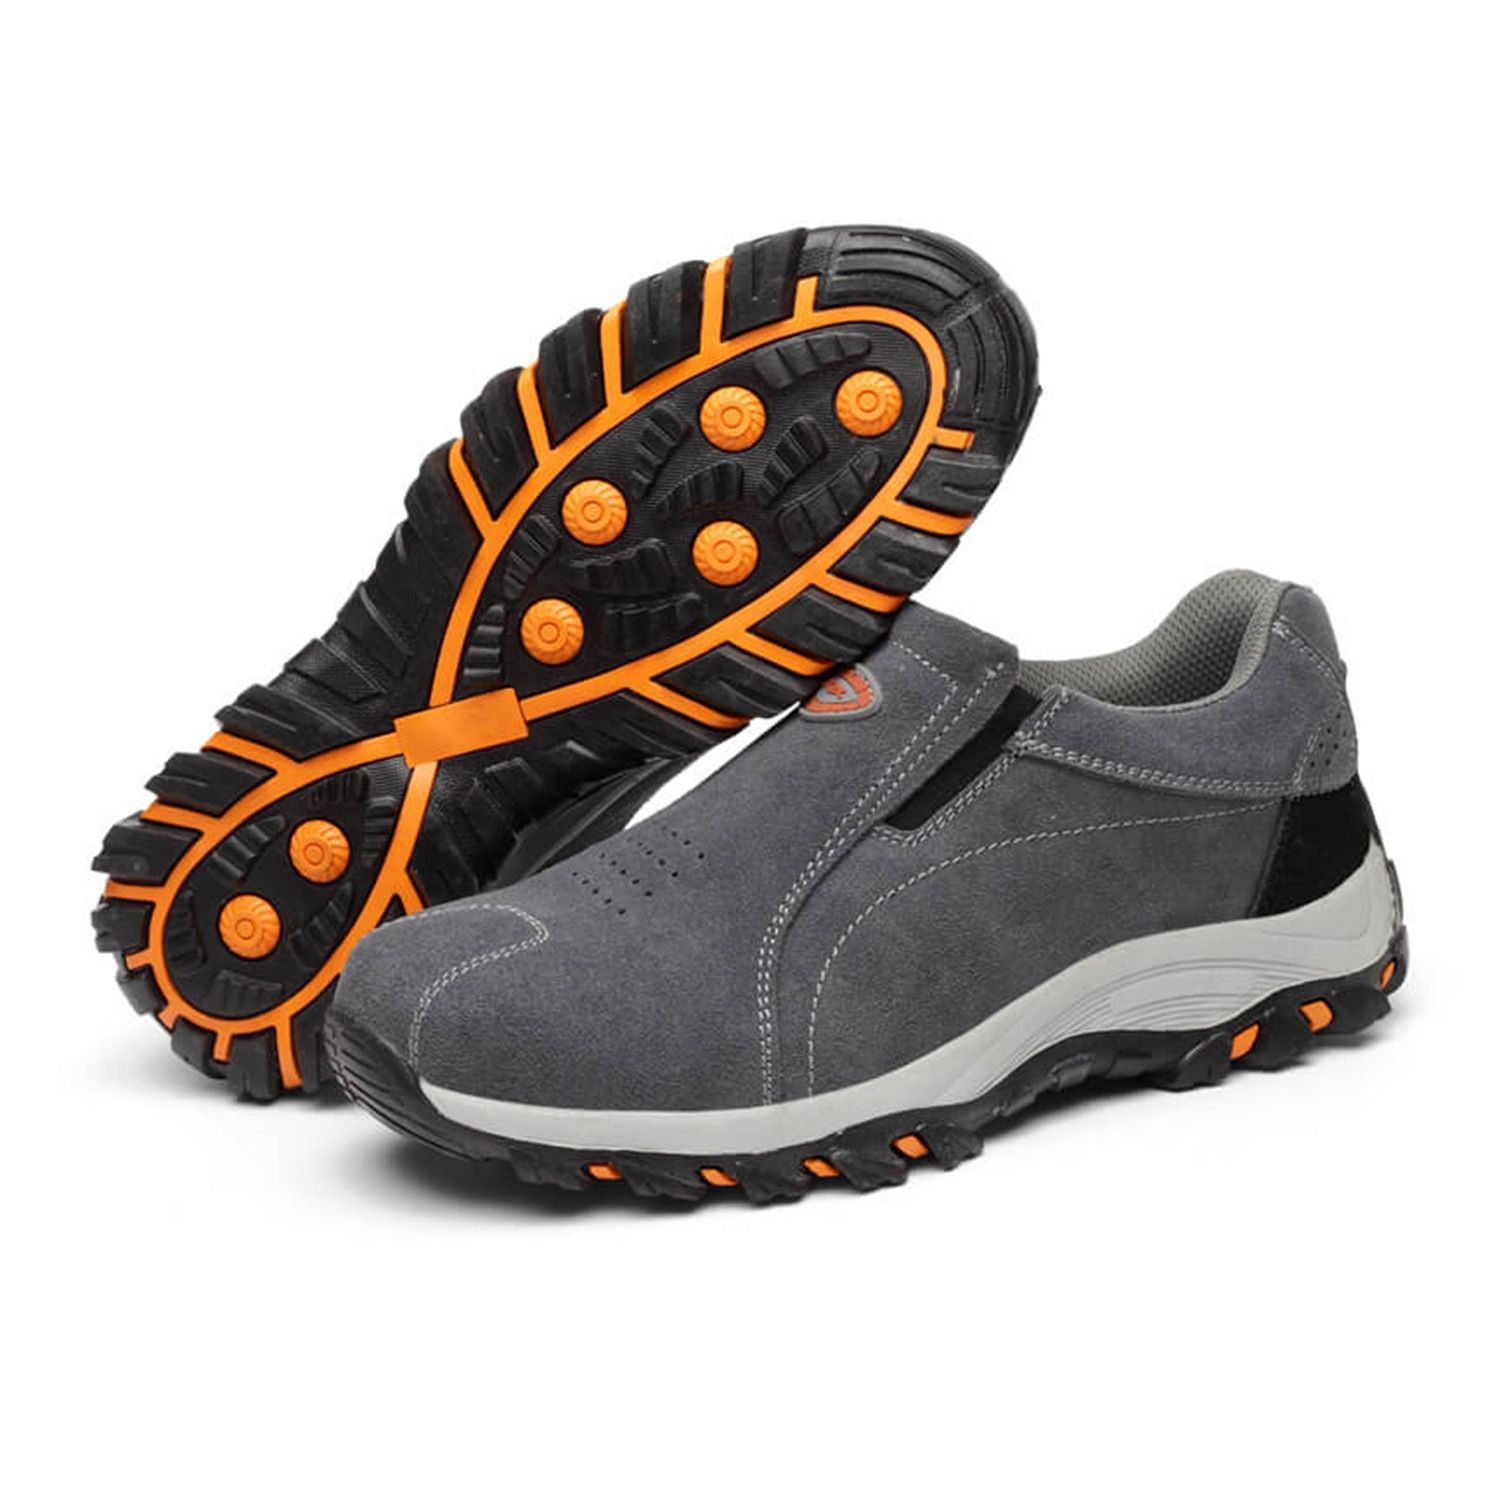 Aox // Gray in 2020 | Work shoes